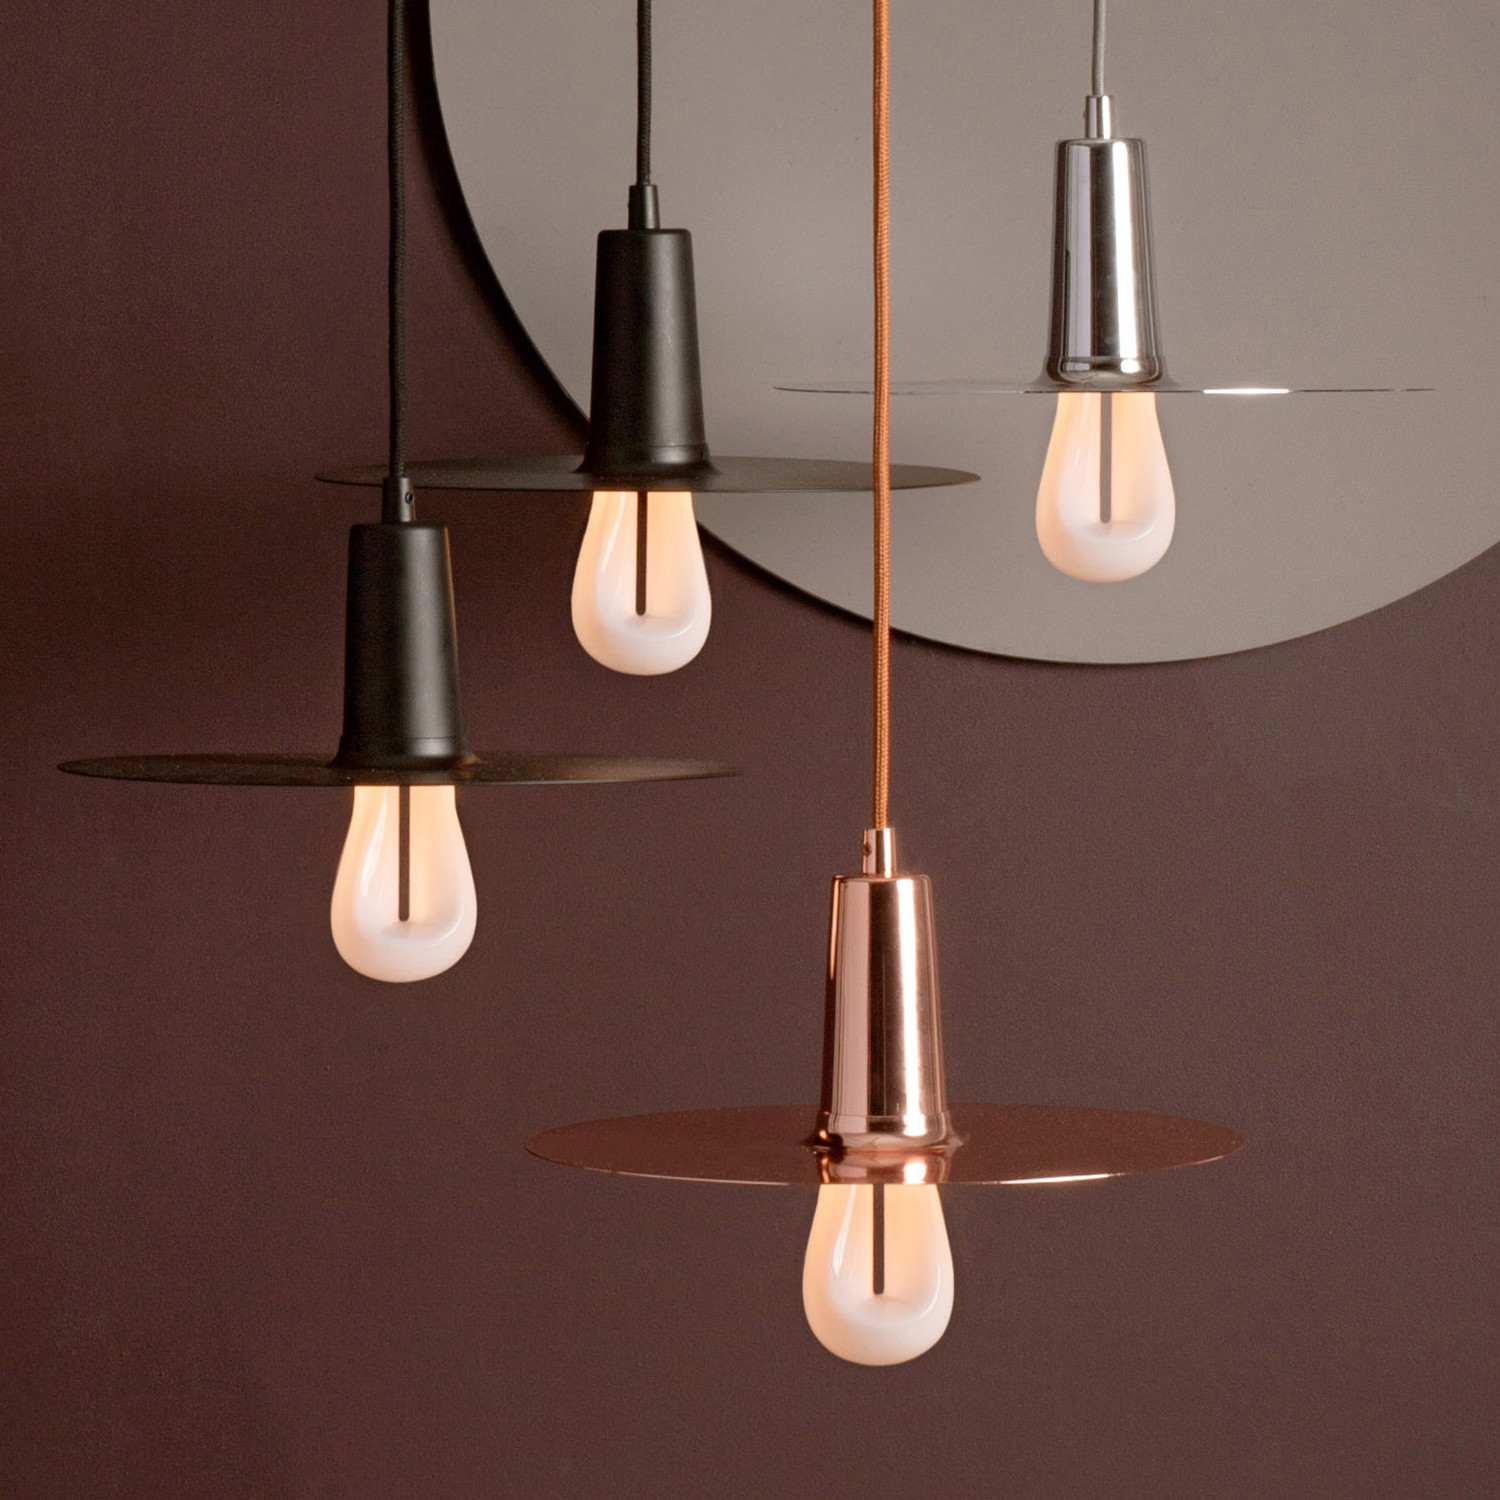 Drop Hat Lamp Light Bulb Copper Original Plumen 002 Cfl Plumen Touch Of Modern